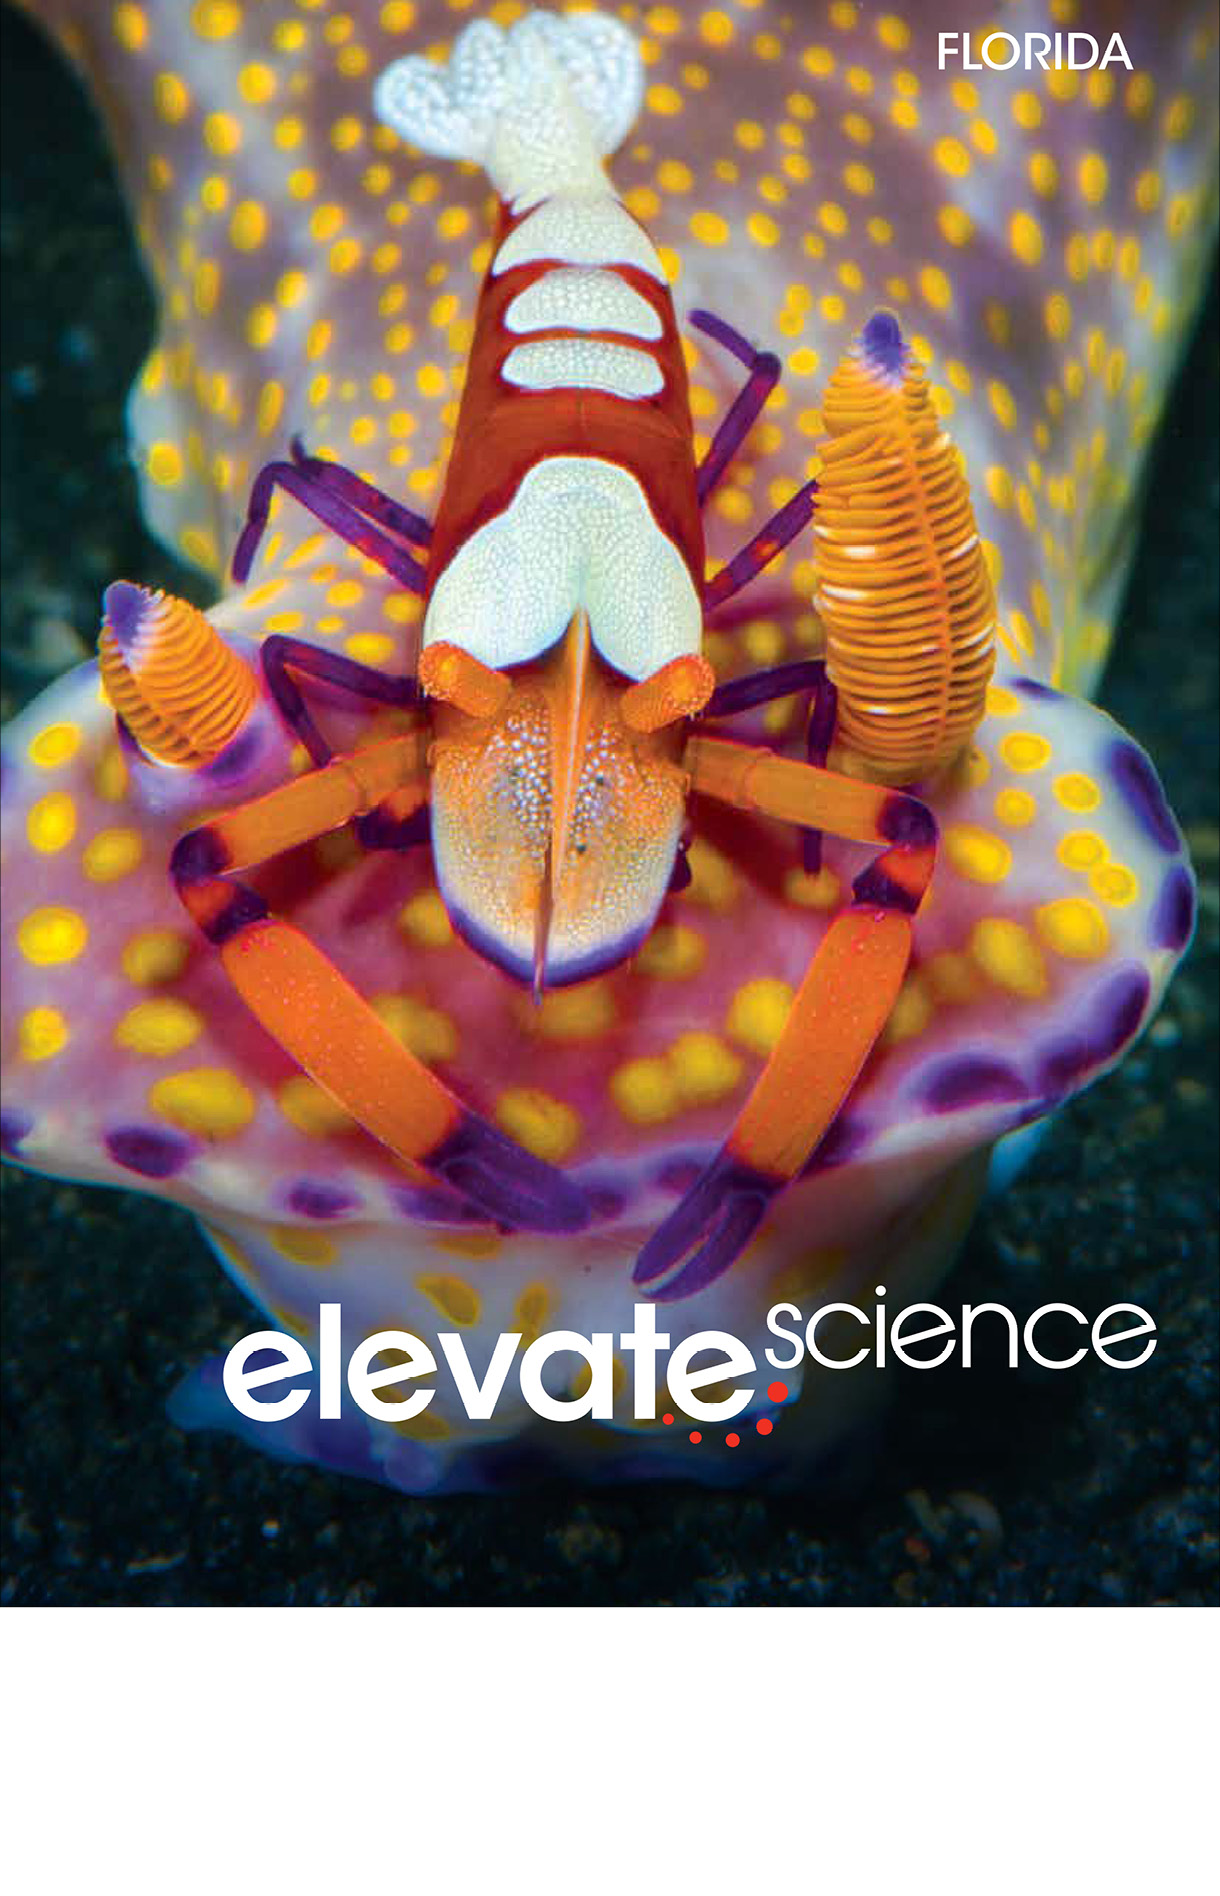 Book cover Elevate Science book. It has an emperor shrimp sitting atop a ceratosoma nudibranch.